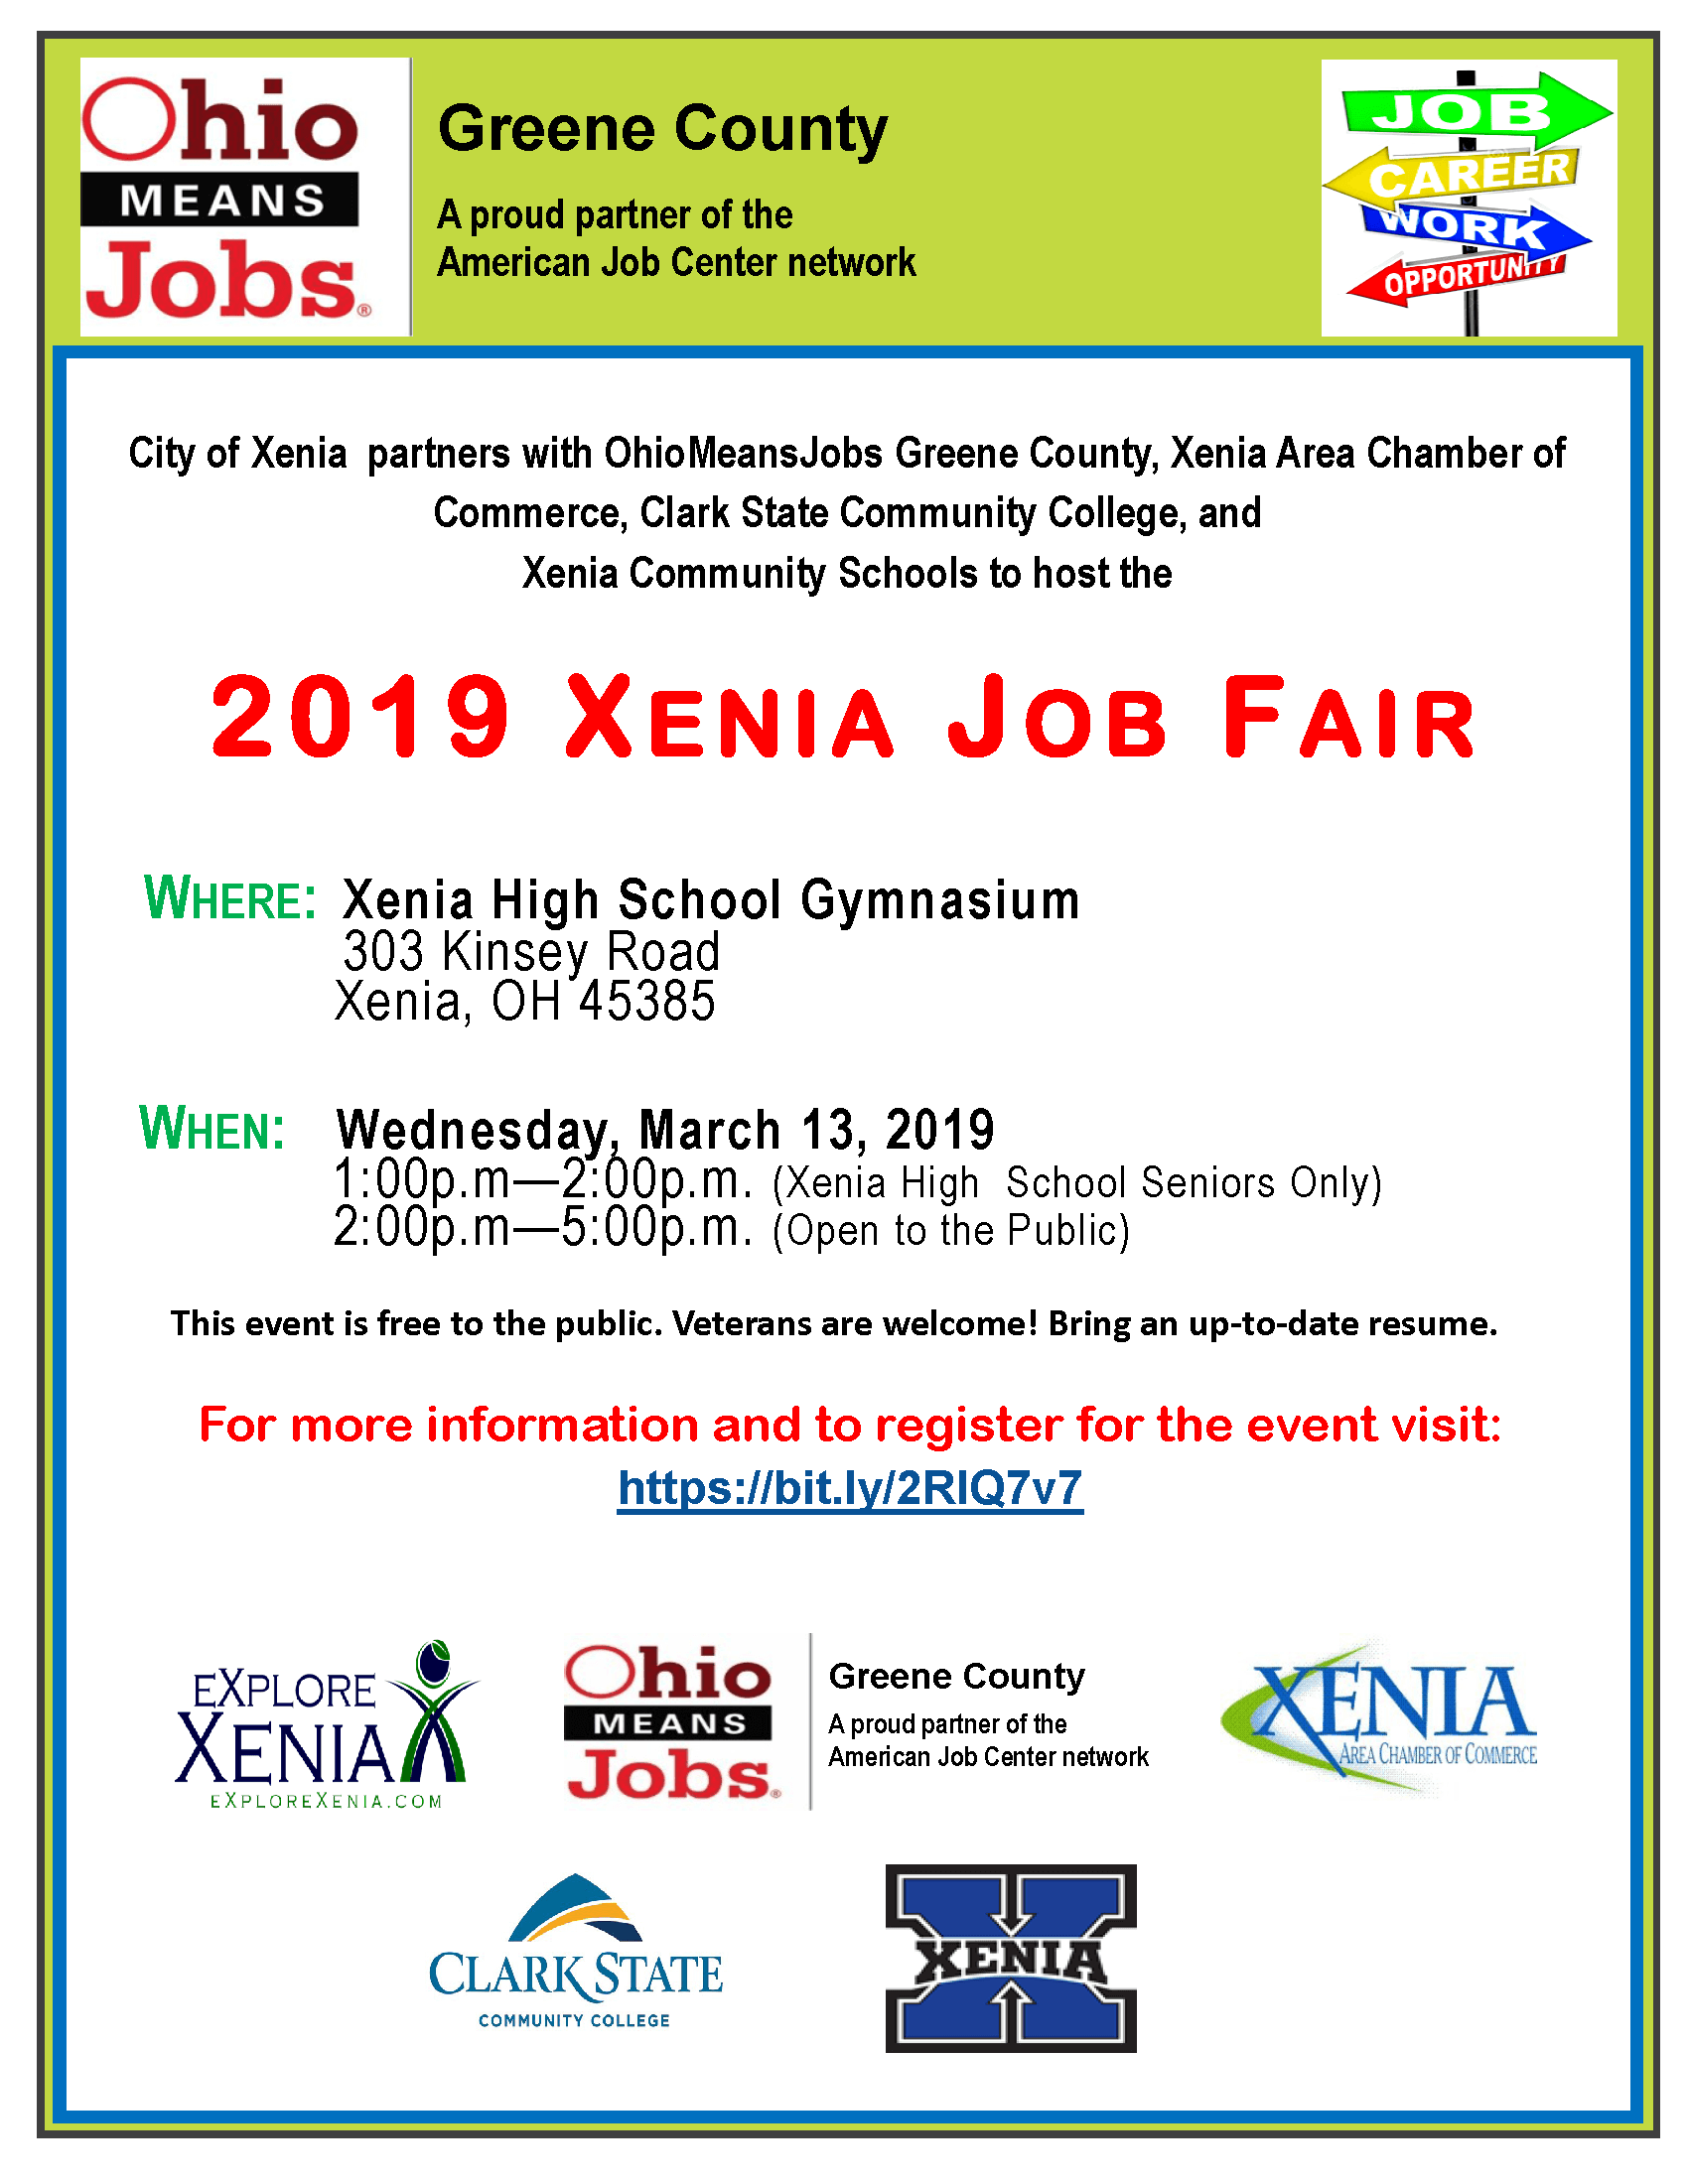 Xenia Job Fair 2019 FLYER